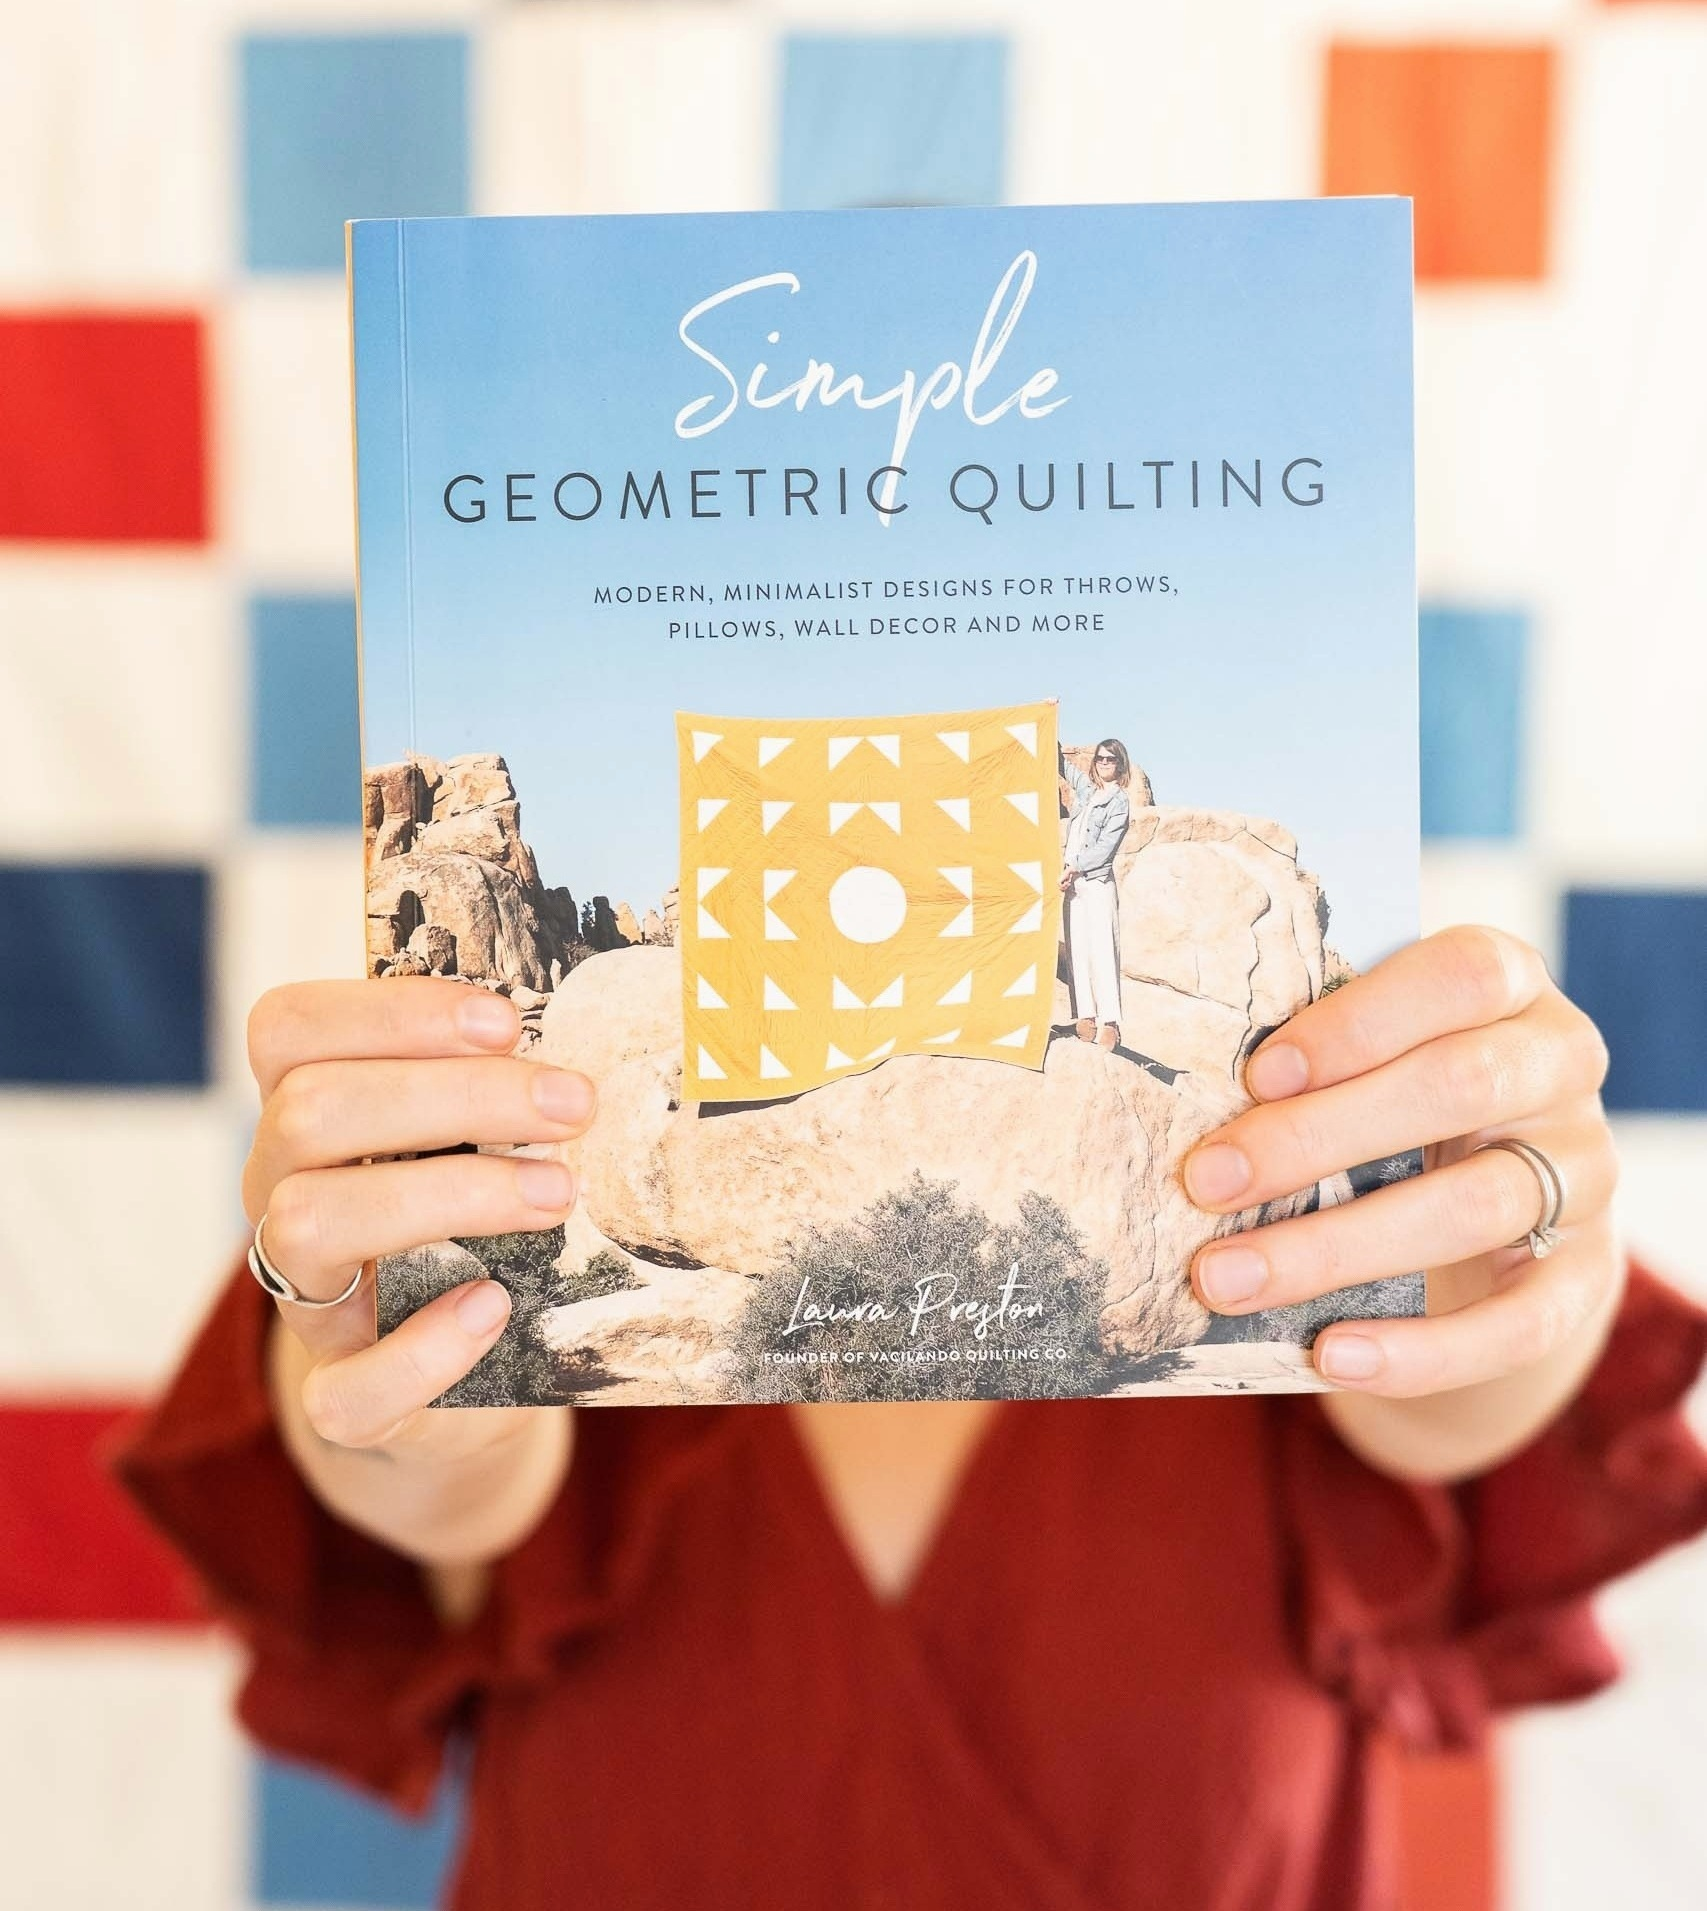 Order a signed copy of Simple Geometric Quilting, available August 27, 2019 or learn the basics of quilting with the Atlantic Quilt Pattern + Tutorial.